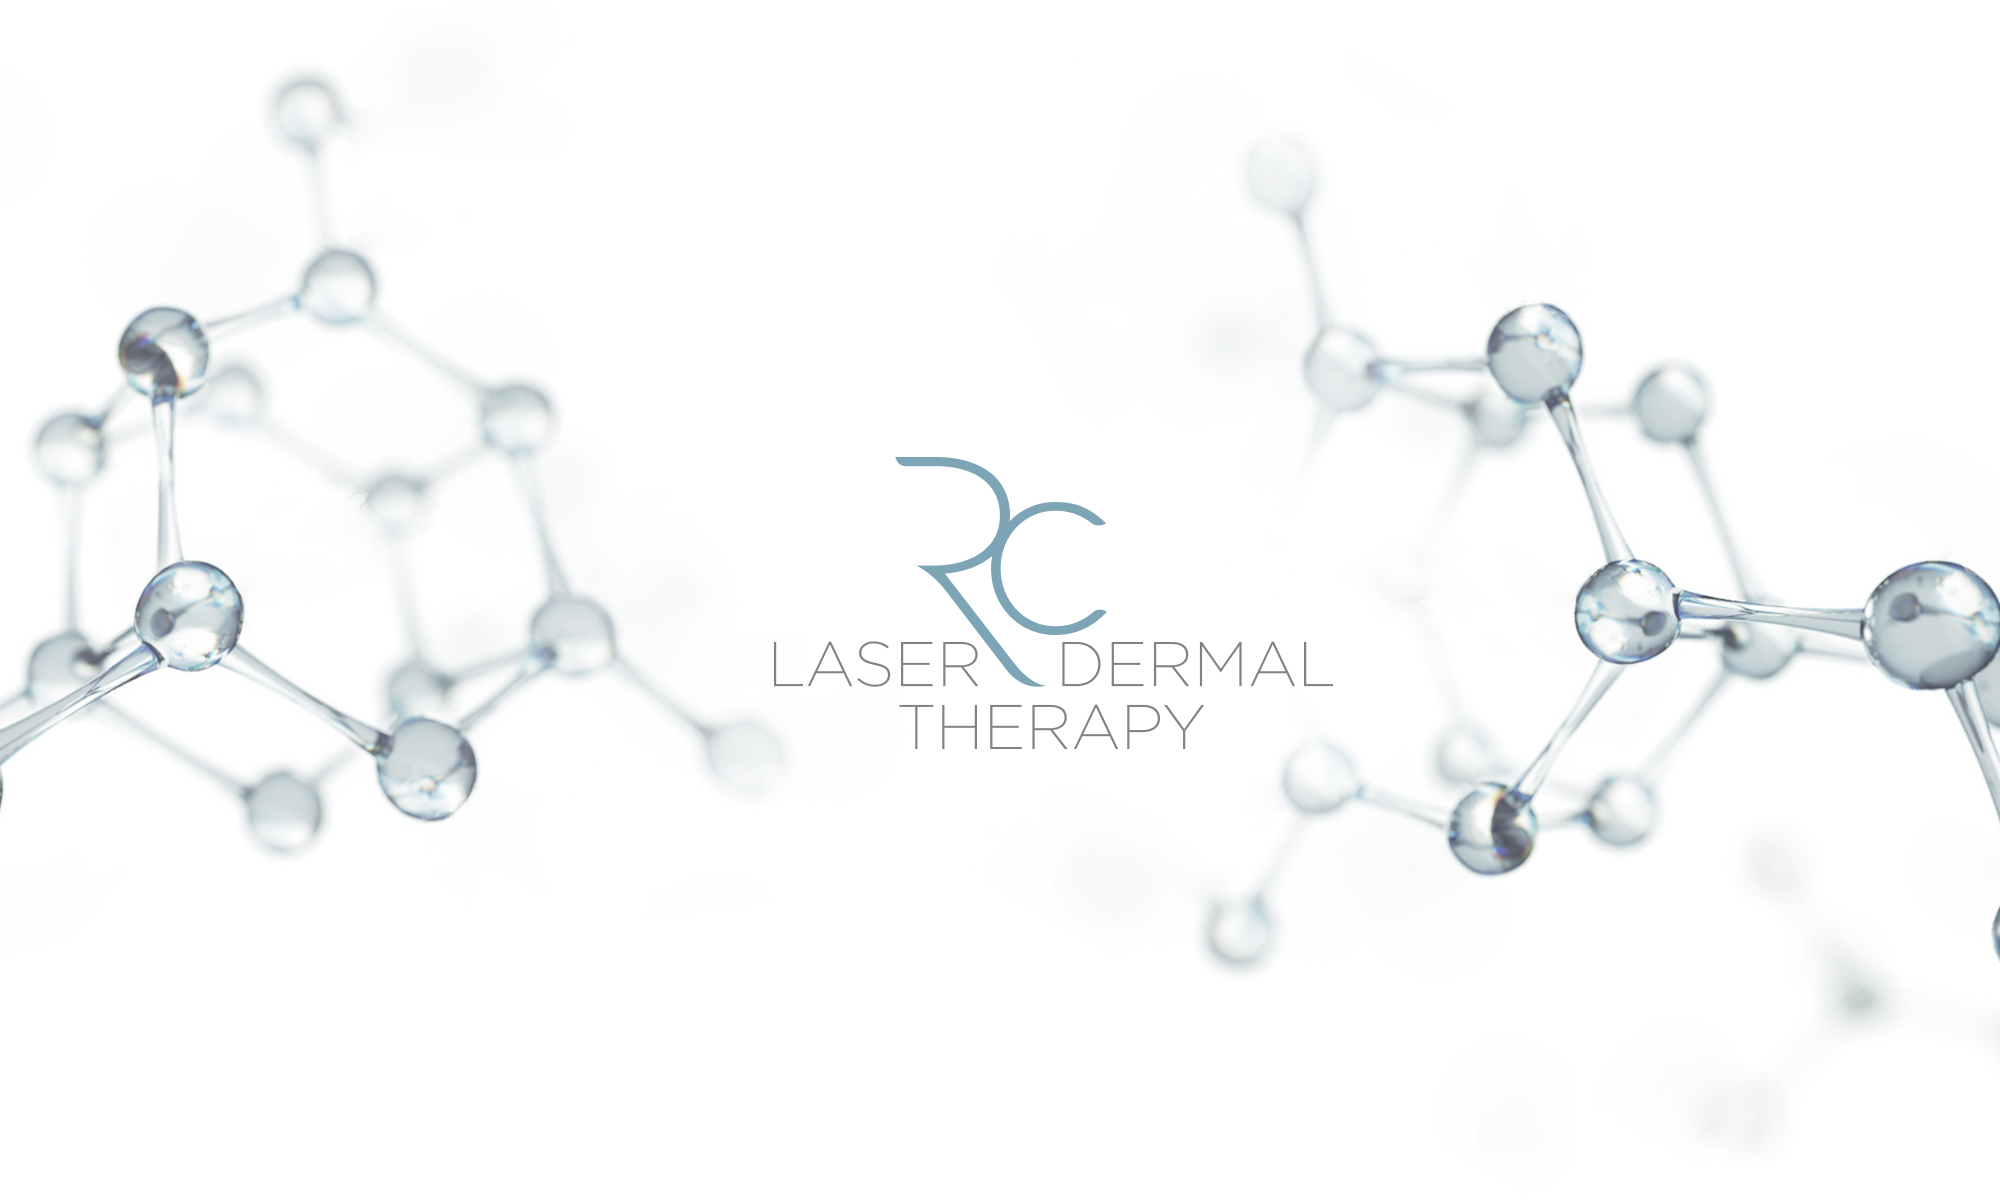 Rc Laser Dermal Therapy